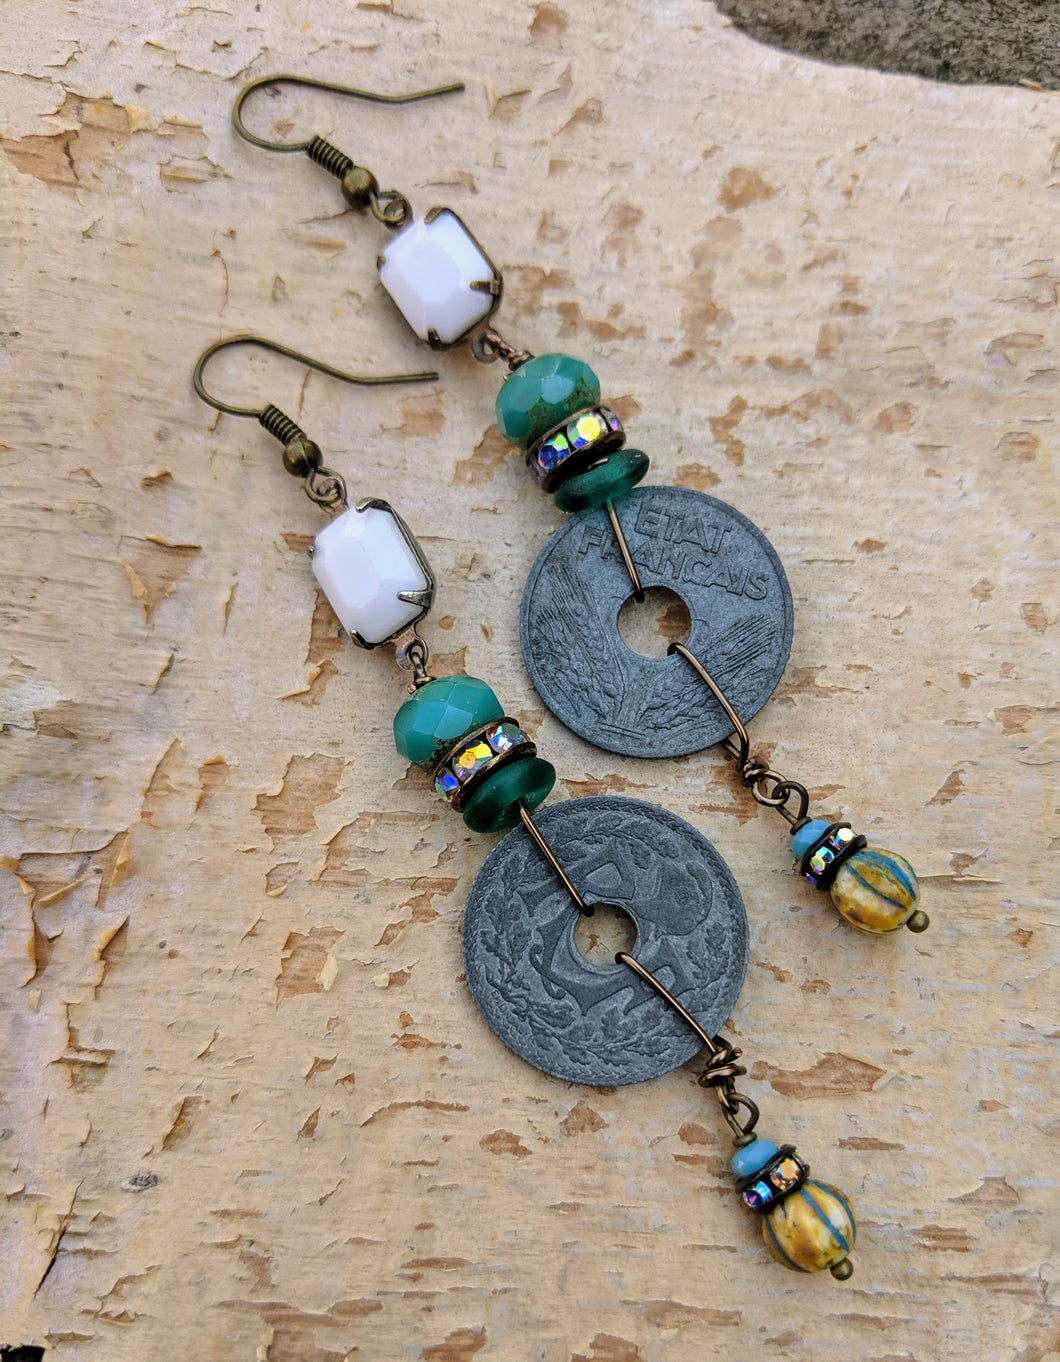 Vintage French Coin Assemblage Earrings